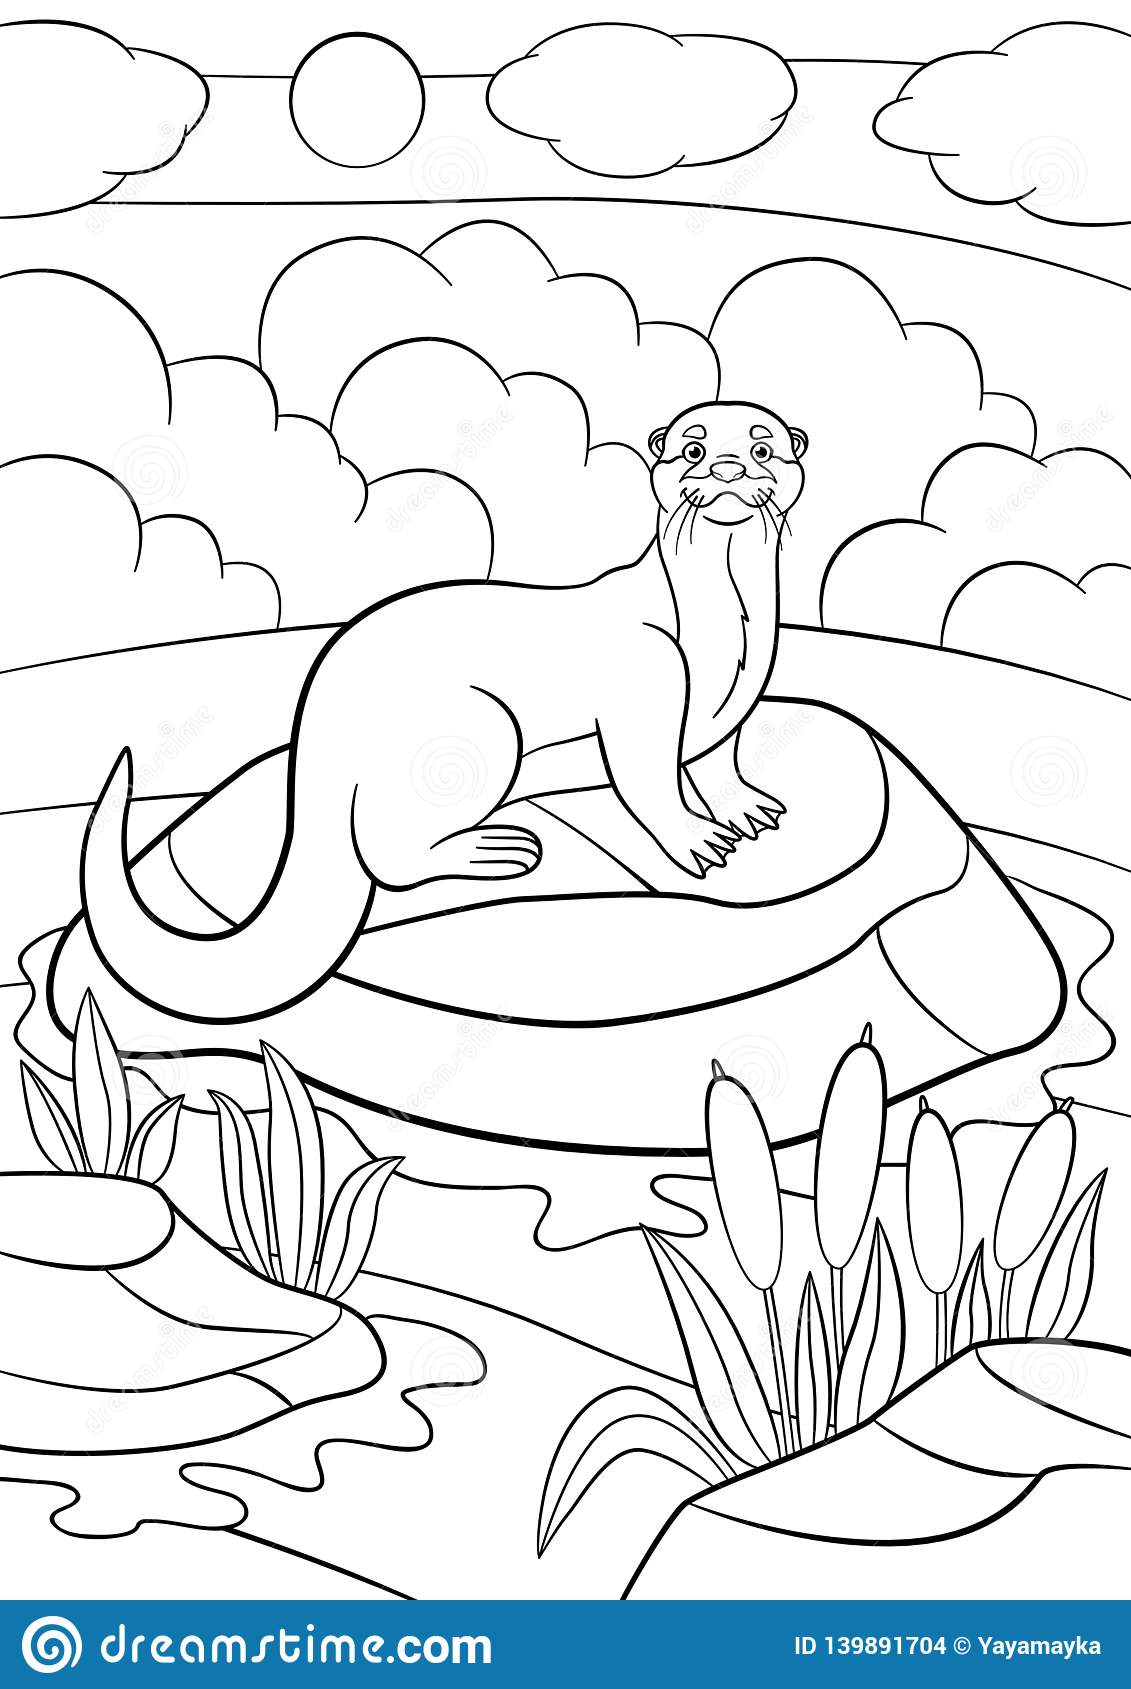 10 Best Pond River And Lake Coloring Pages for Kids - Updated 2018 | 1689x1131